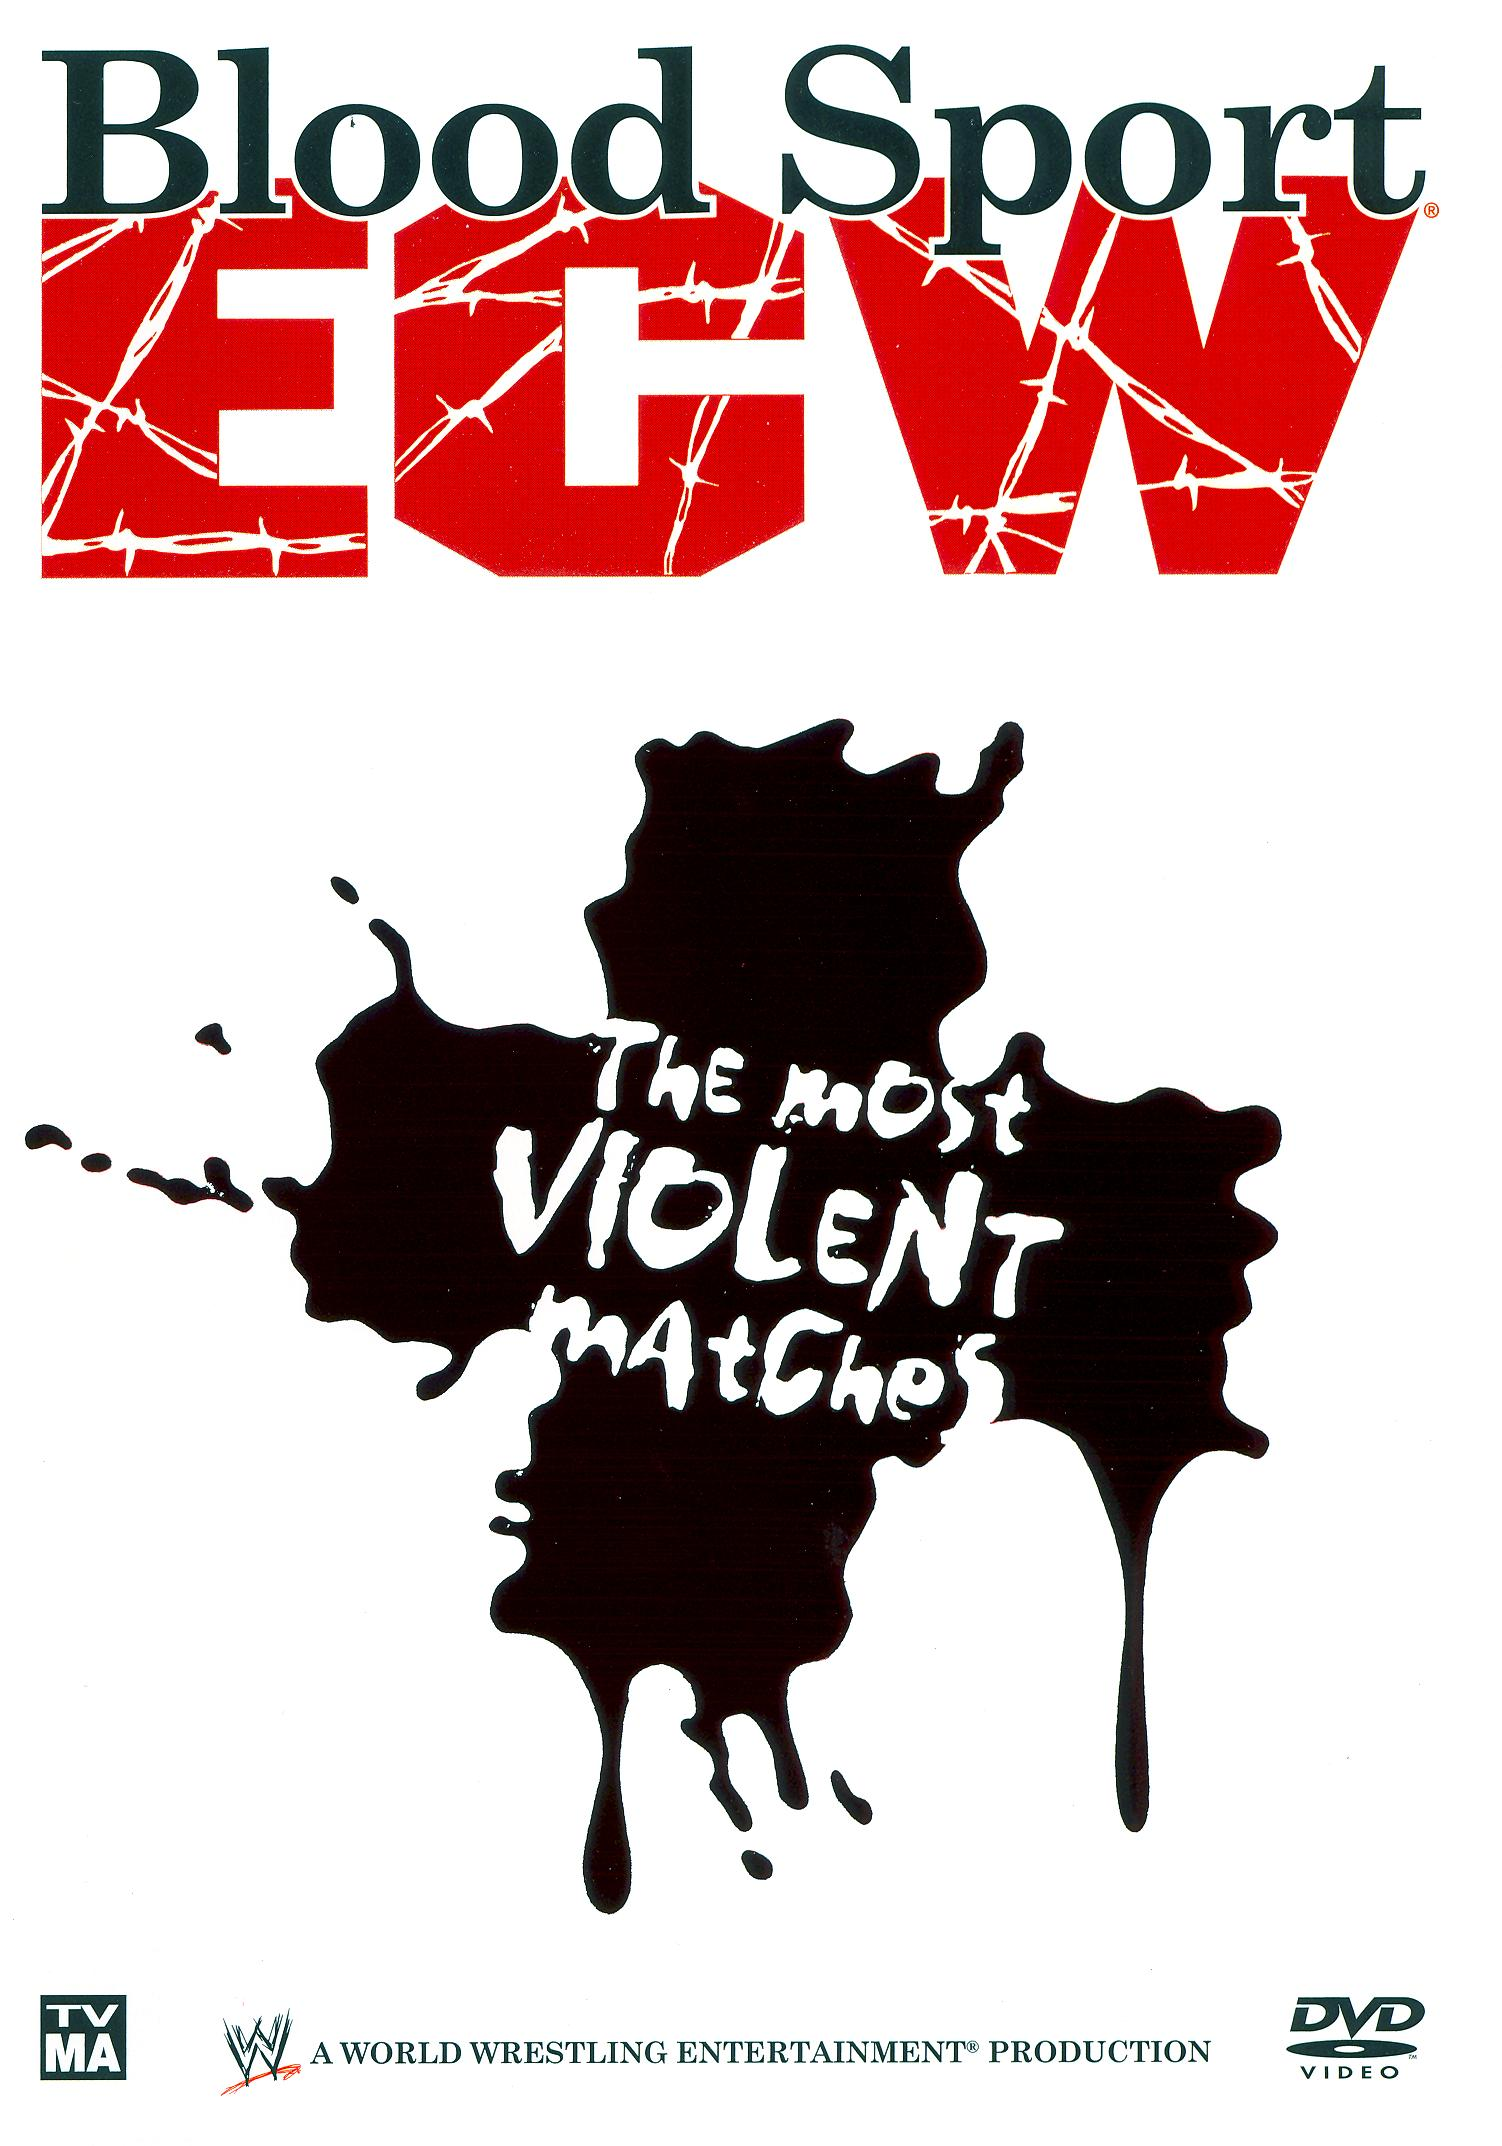 WWE: Blood Sport ECW - The Most Violent Matches